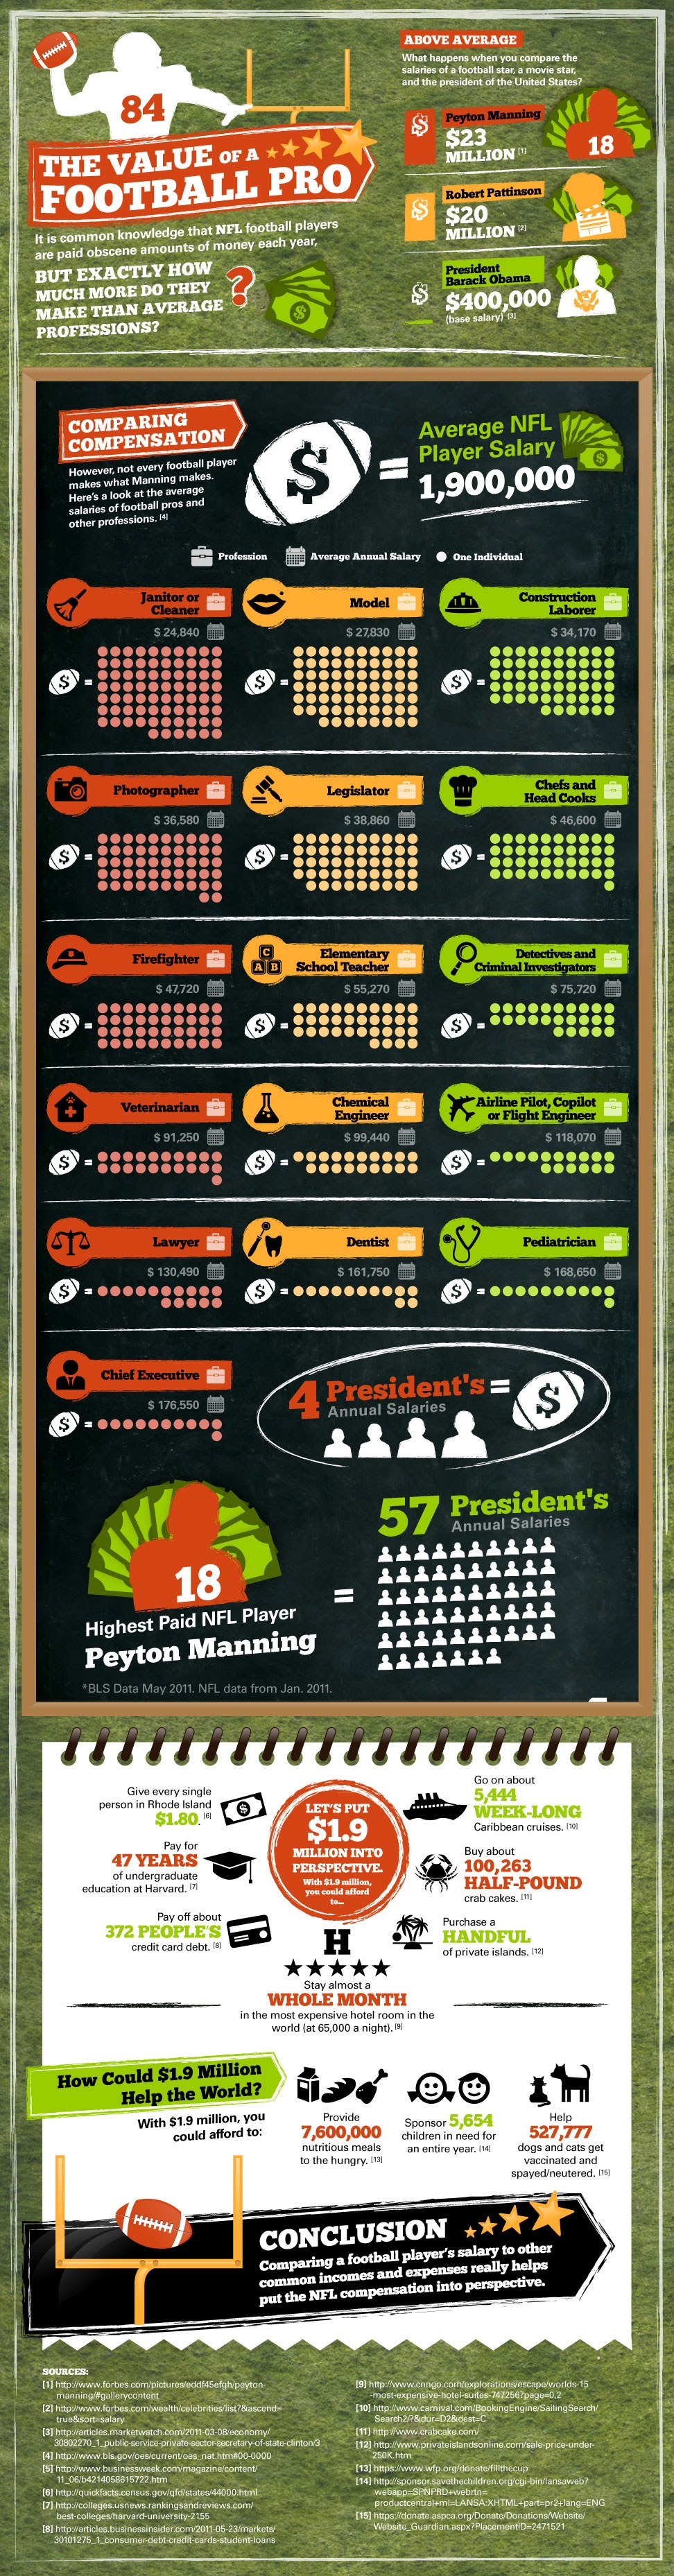 The Value of a Professional Footballer Nfl, Infographic